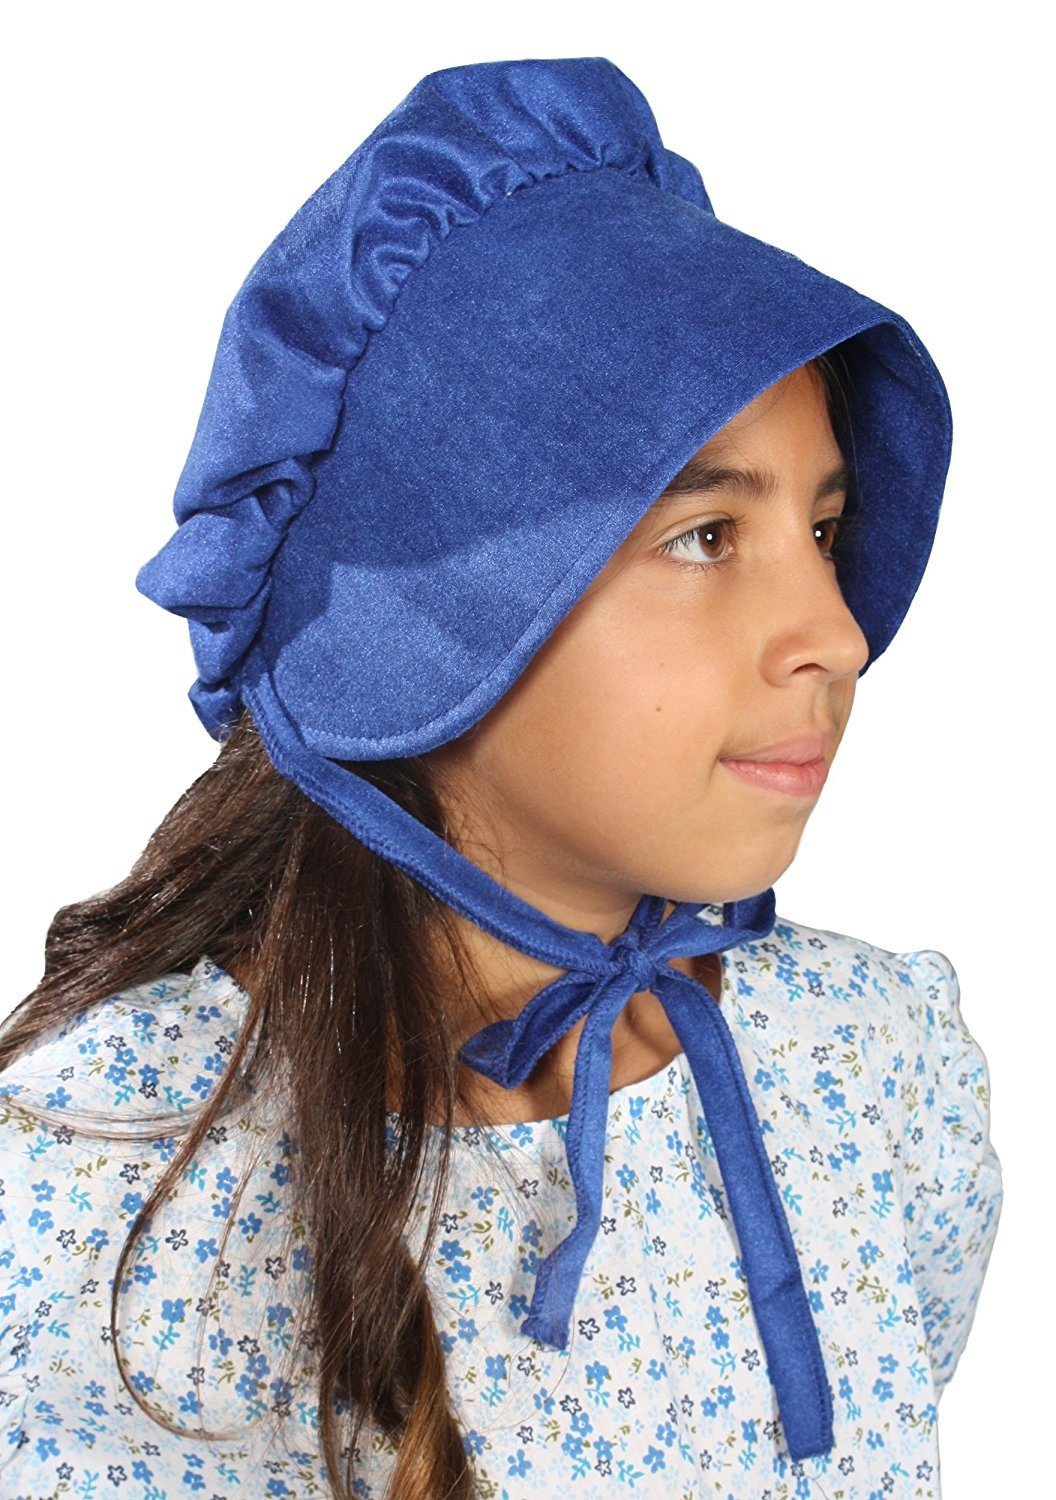 a6307eceeb9 White Bonnet Costume Toys  Buy Online from Fishpond.co.nz